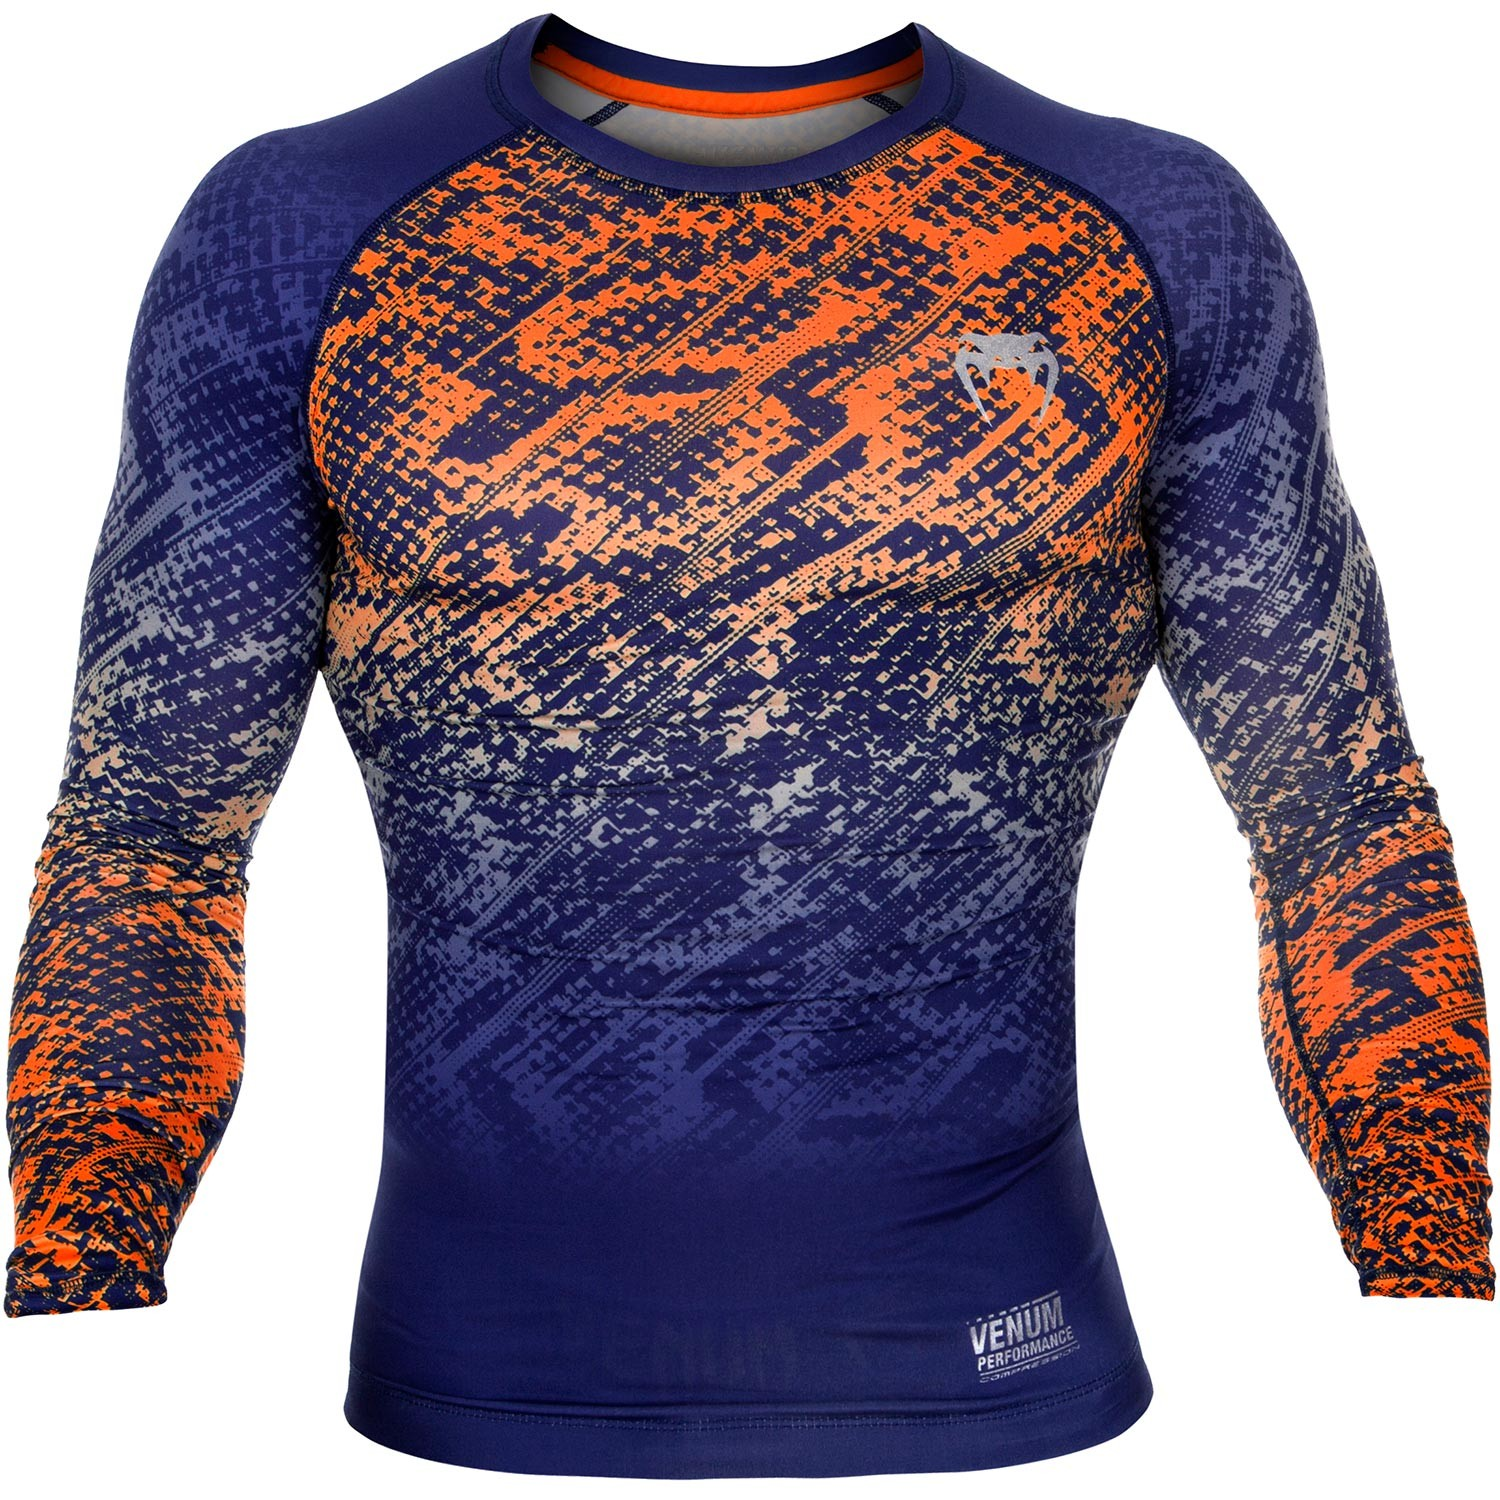 Рашгард Venum Tropical Blue/Orange L/S<br>Вес кг: 200.00000000;